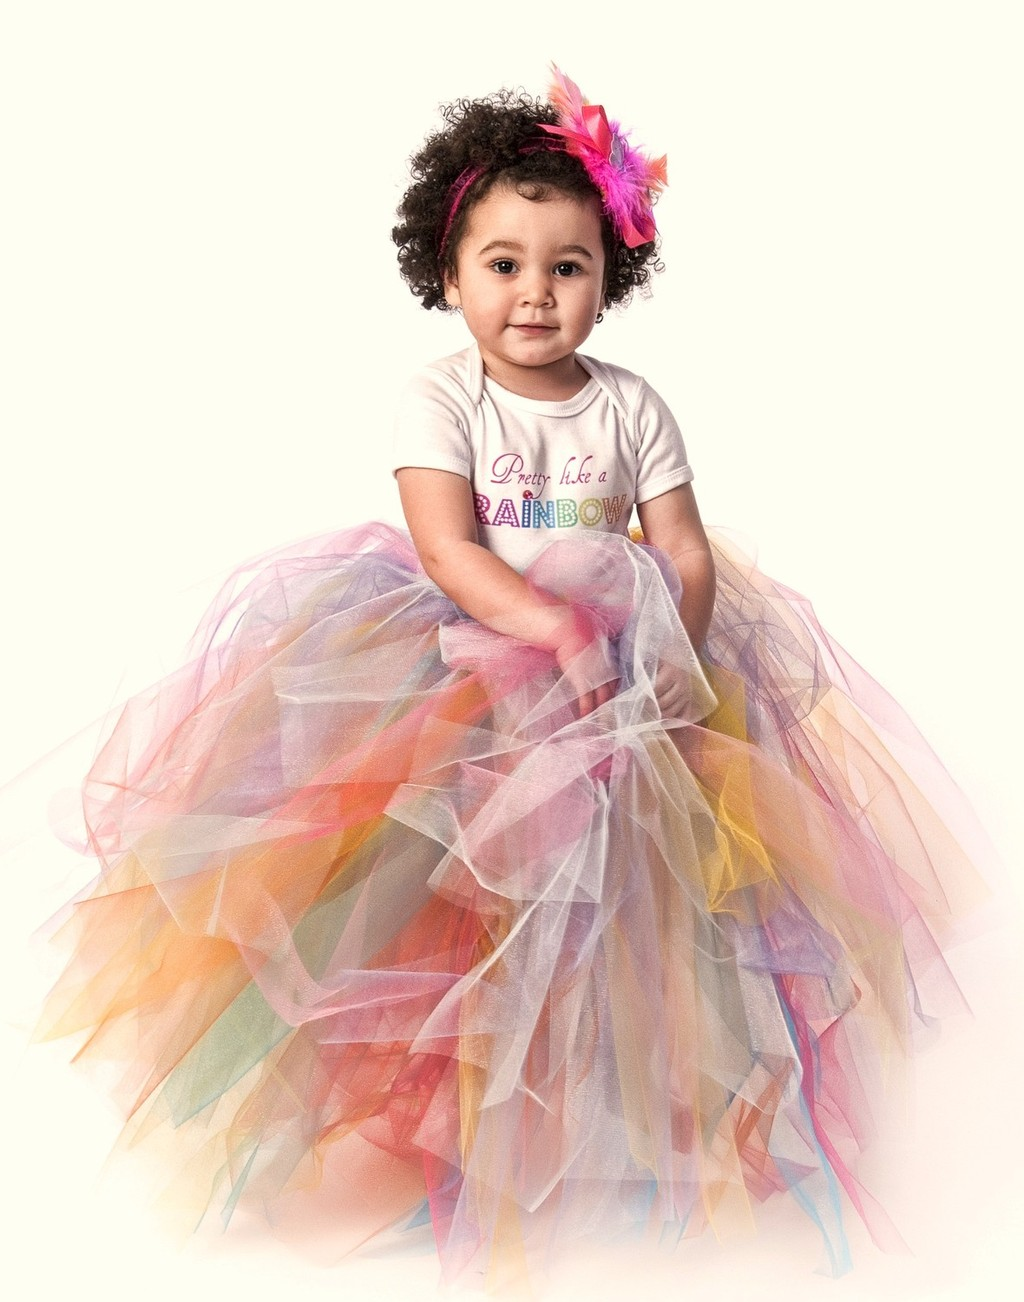 rainbow wedding inspiration adorable flower girl dress